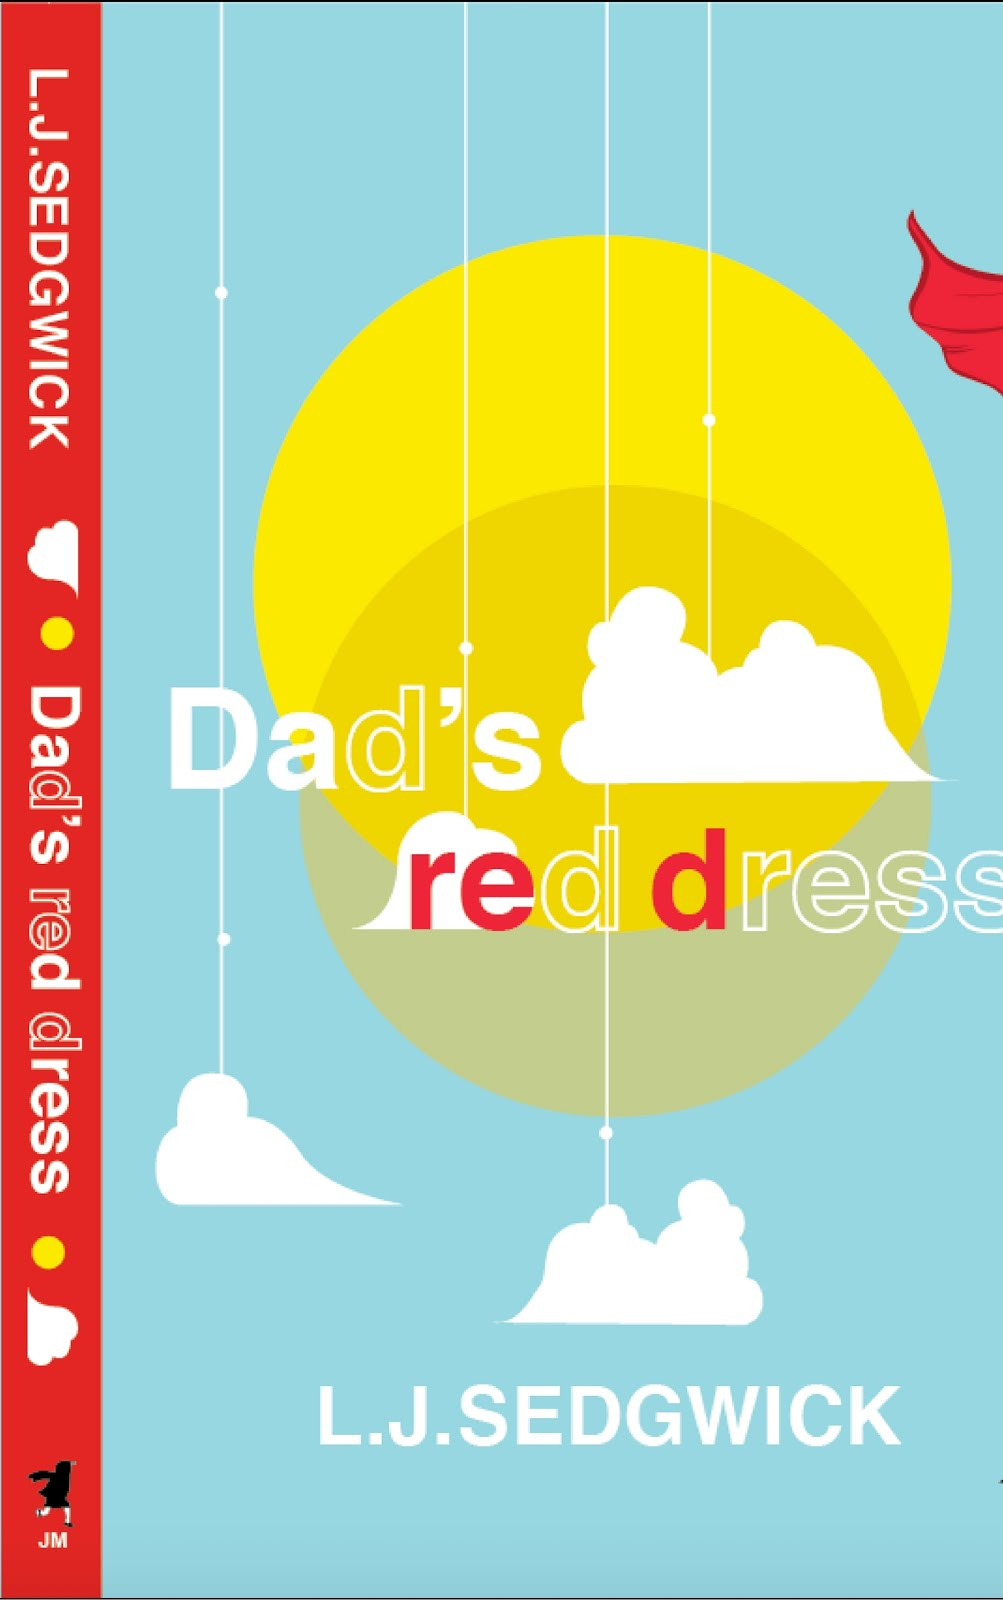 Dad's Red Dress... coming out soon.